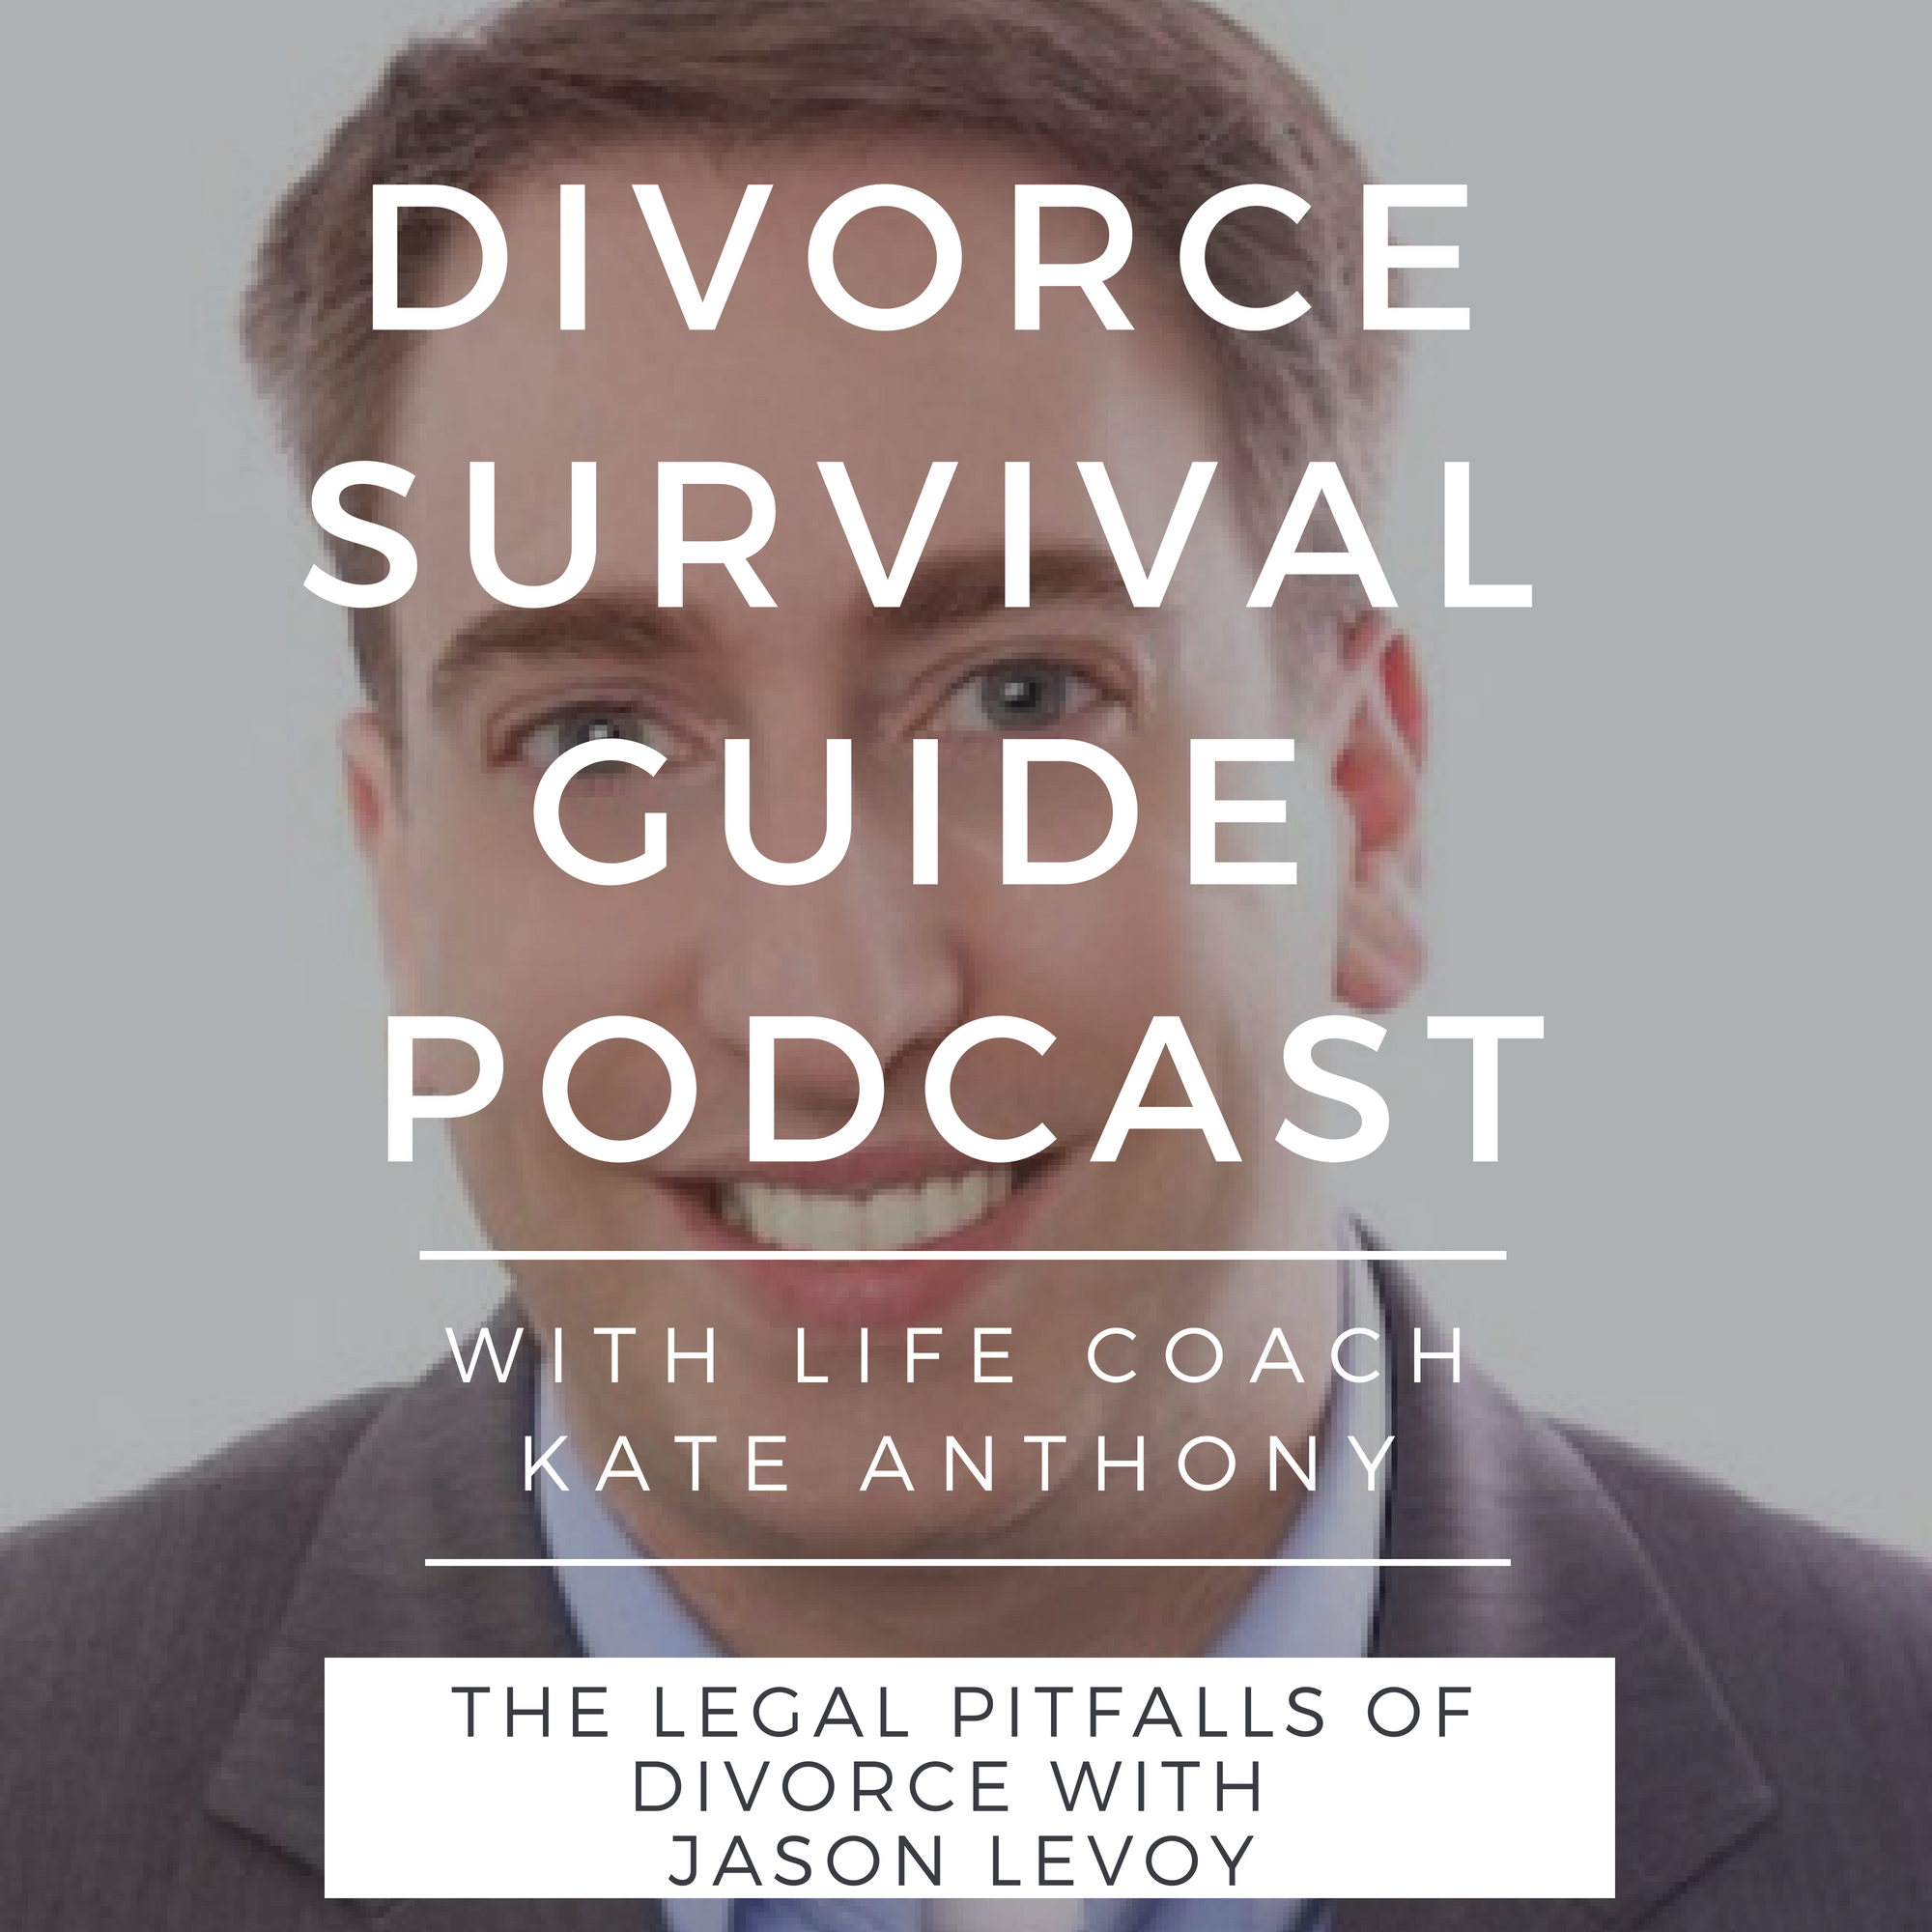 The Divorce Survival Guide Podcast - The Legal Pitfalls of Divorce with Jason Levoy